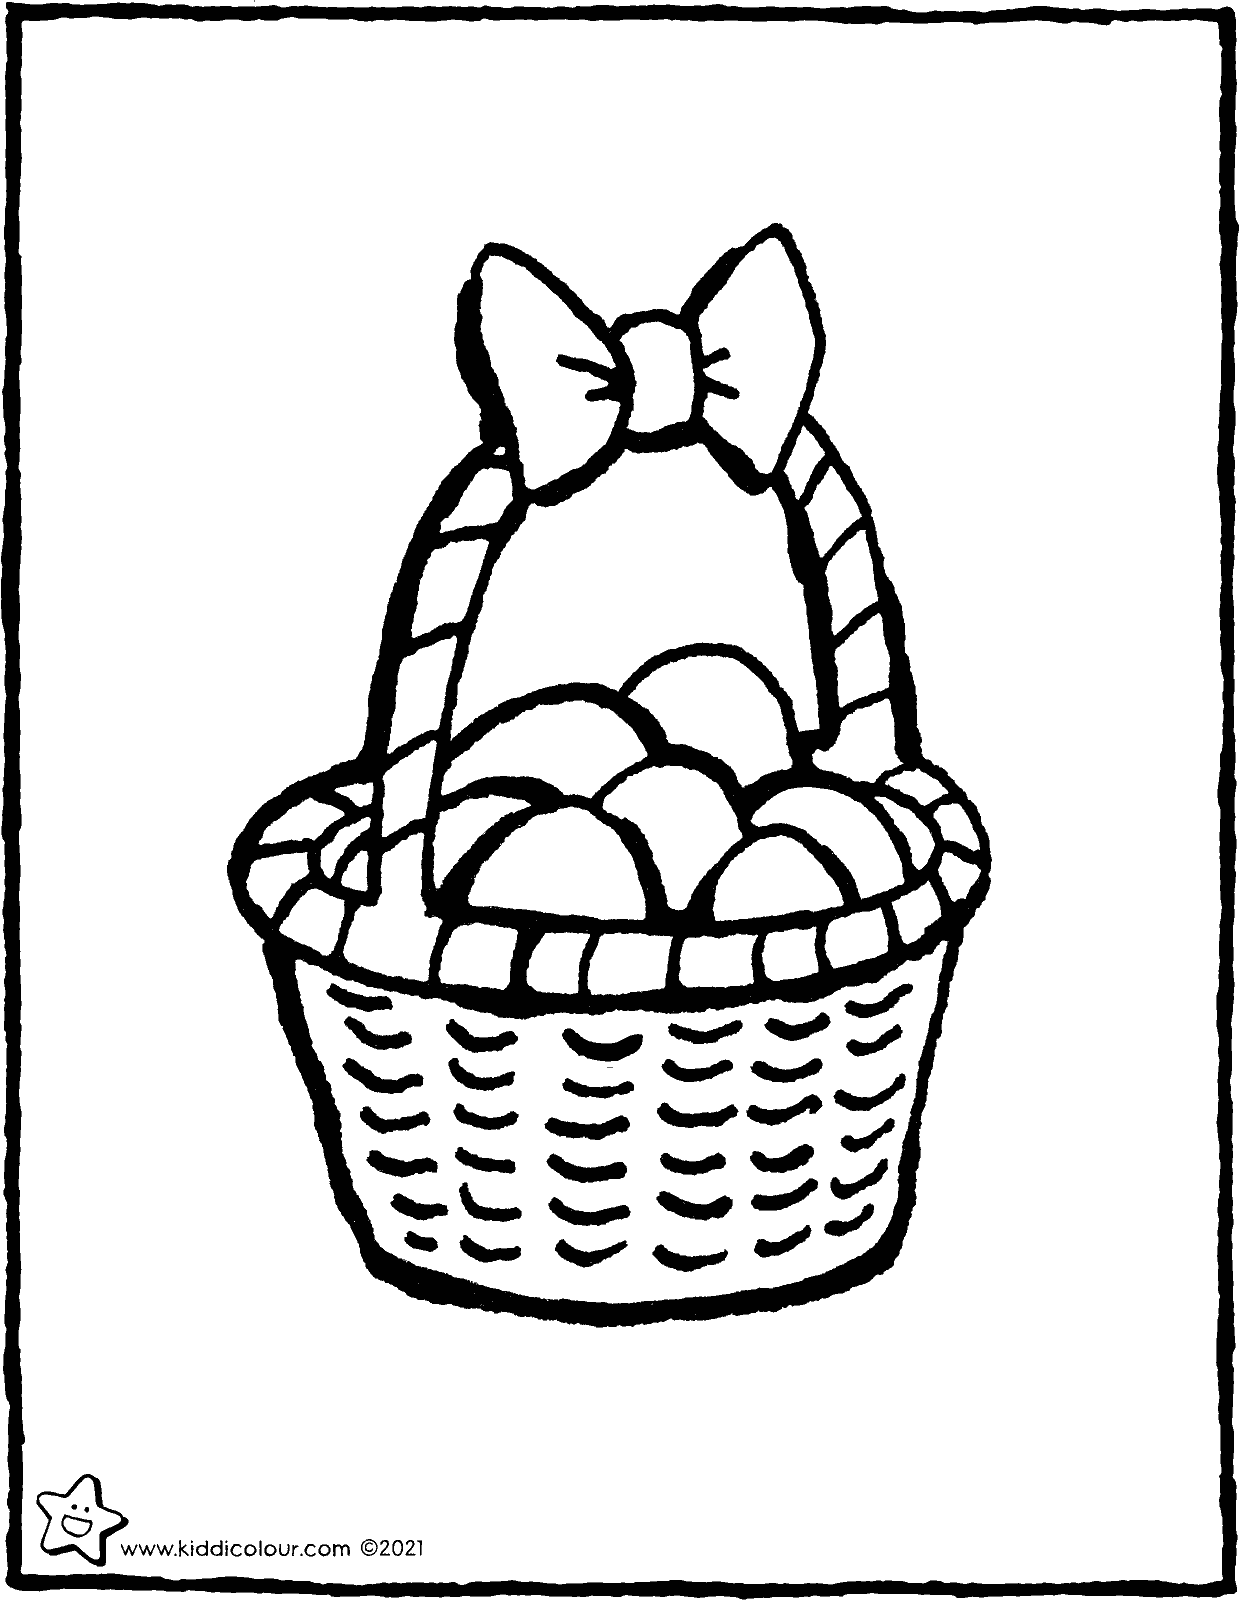 basket of eggs colouring page drawing picture 01V